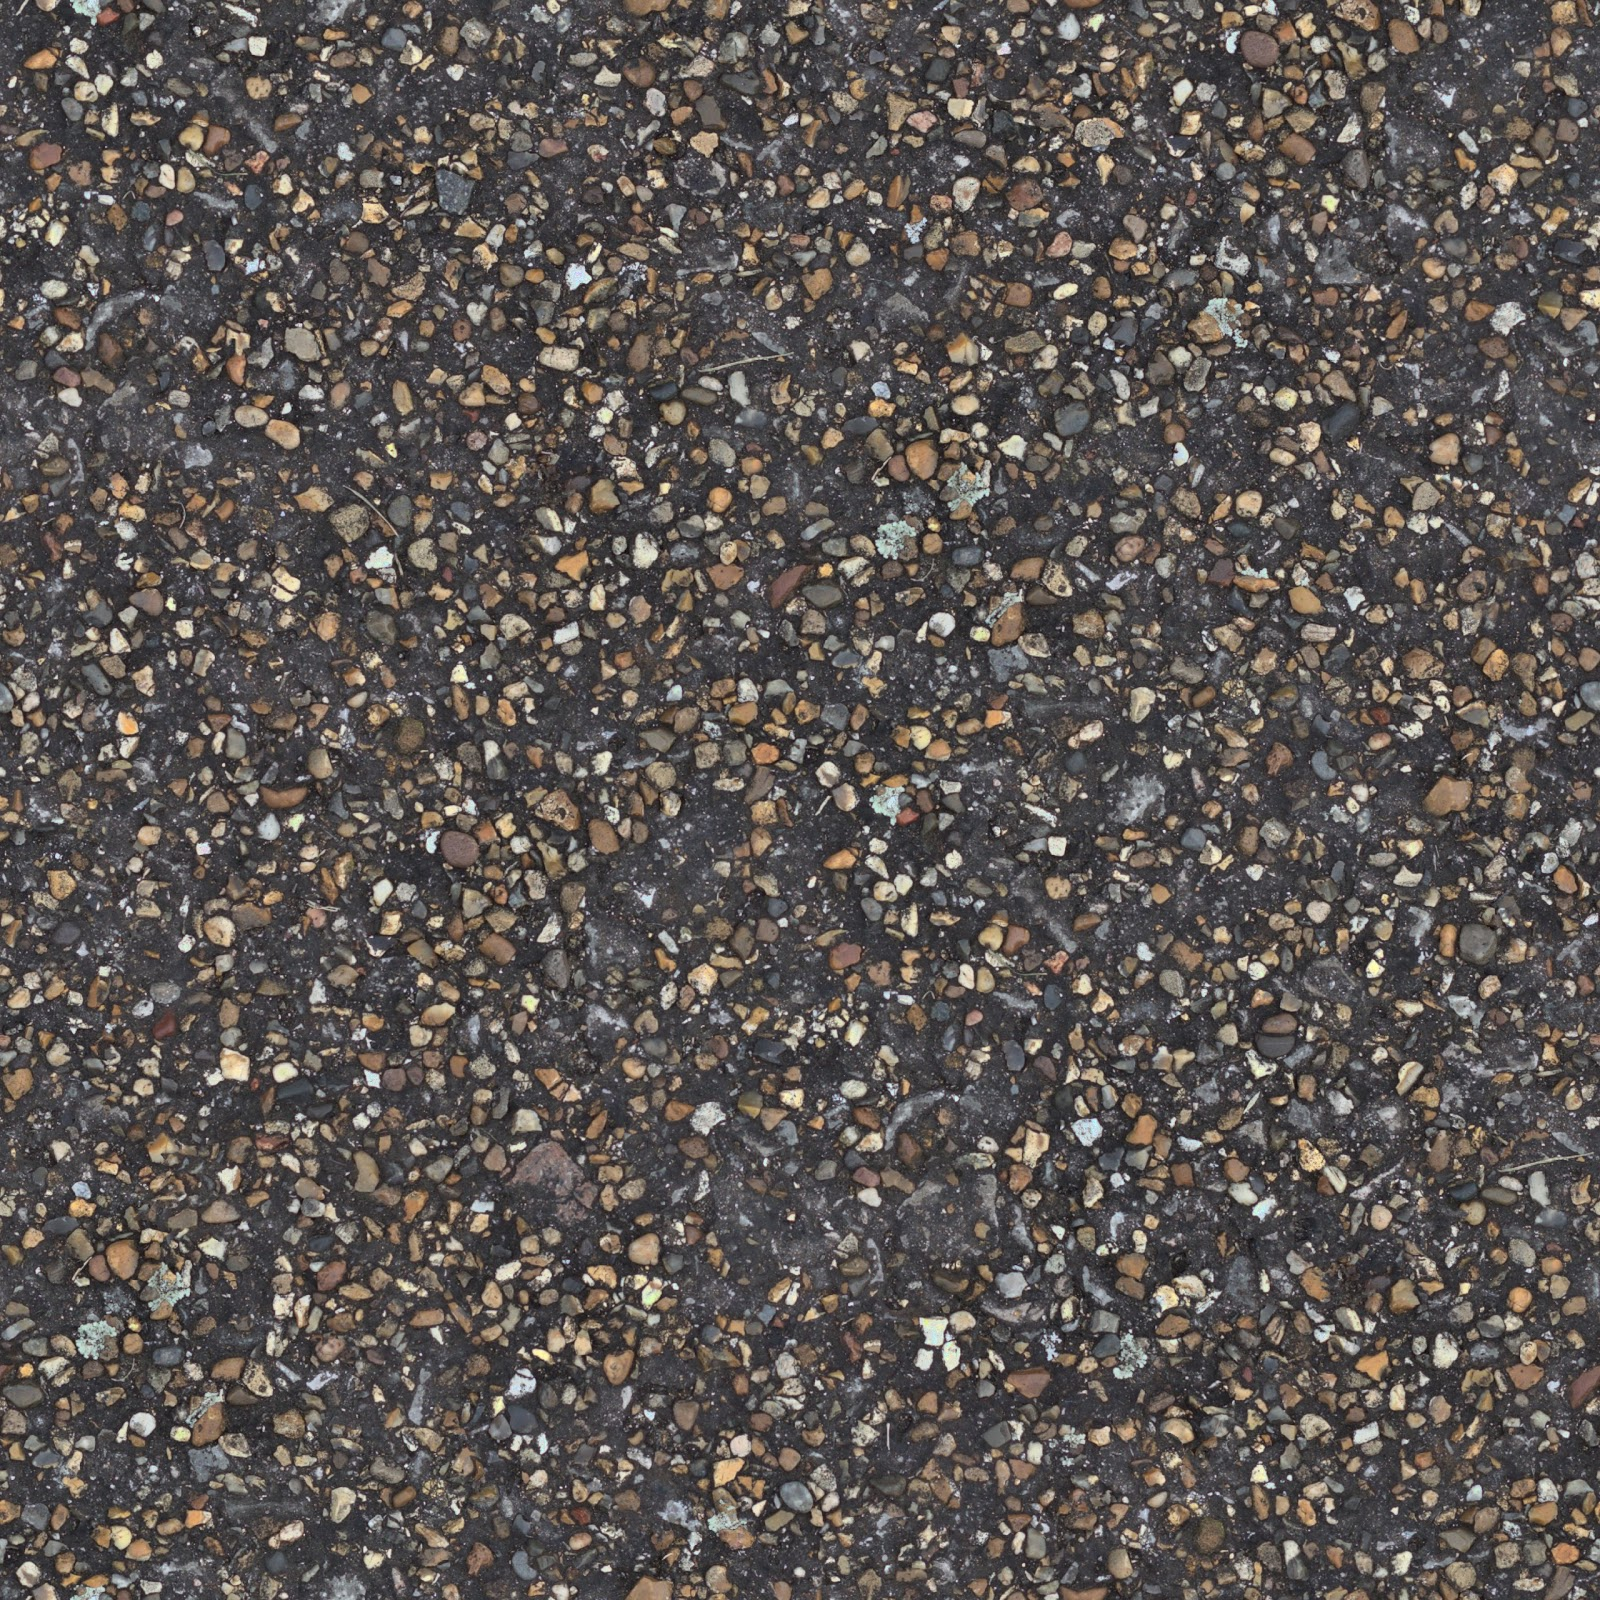 Seamless concrete pebble stone walkway texture